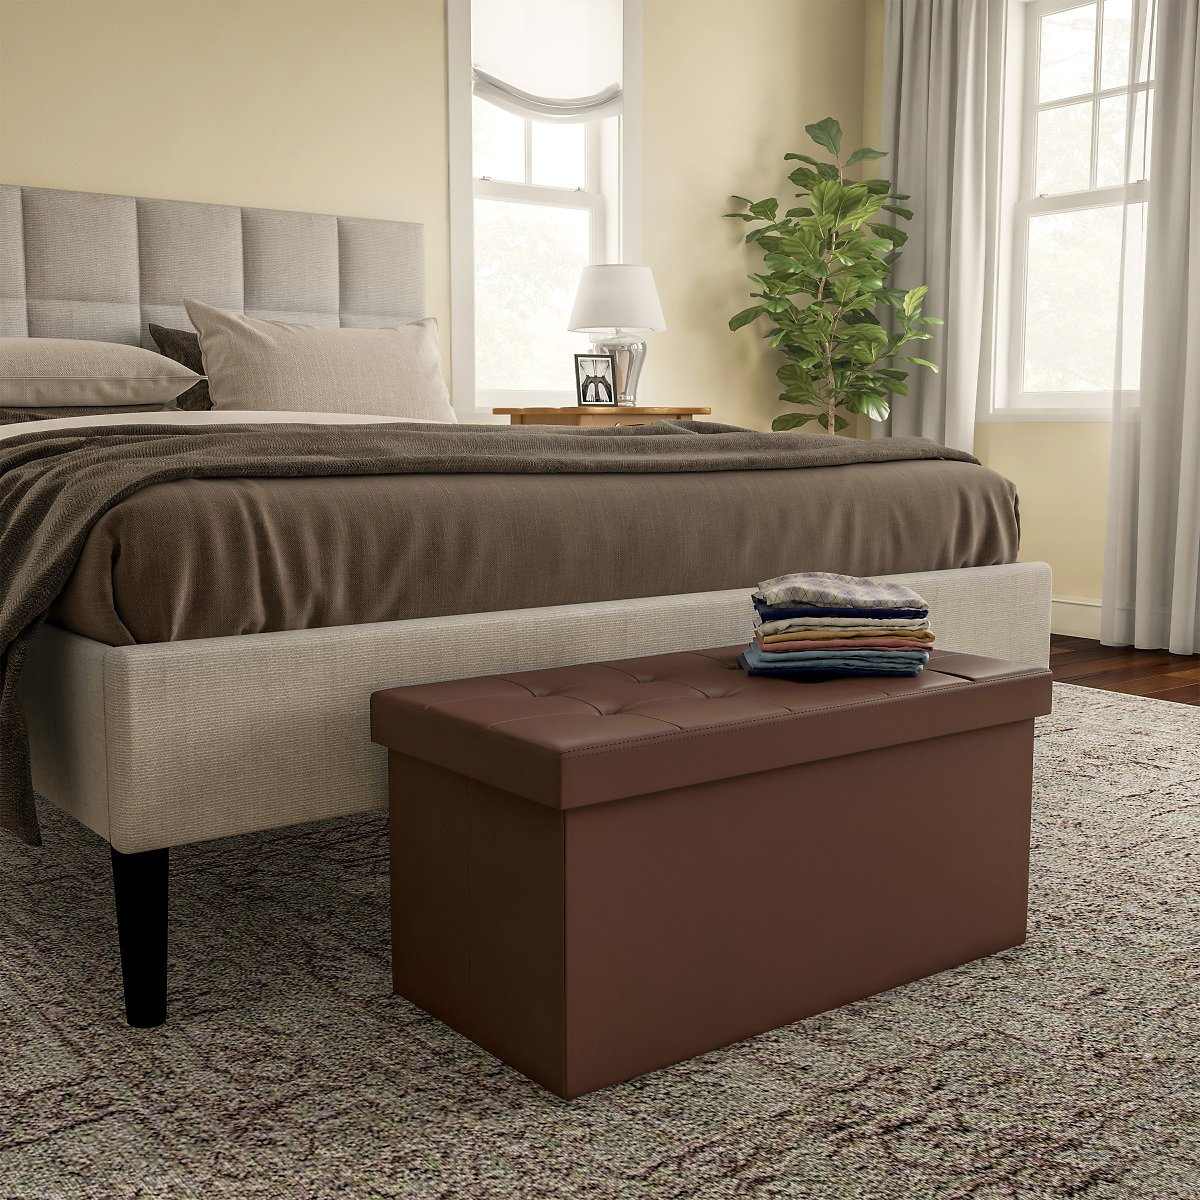 Folding Storage Bench Ottoman Foam Padded Lid-Removable Bin-Organizer for Home, Bedroom & Living Room